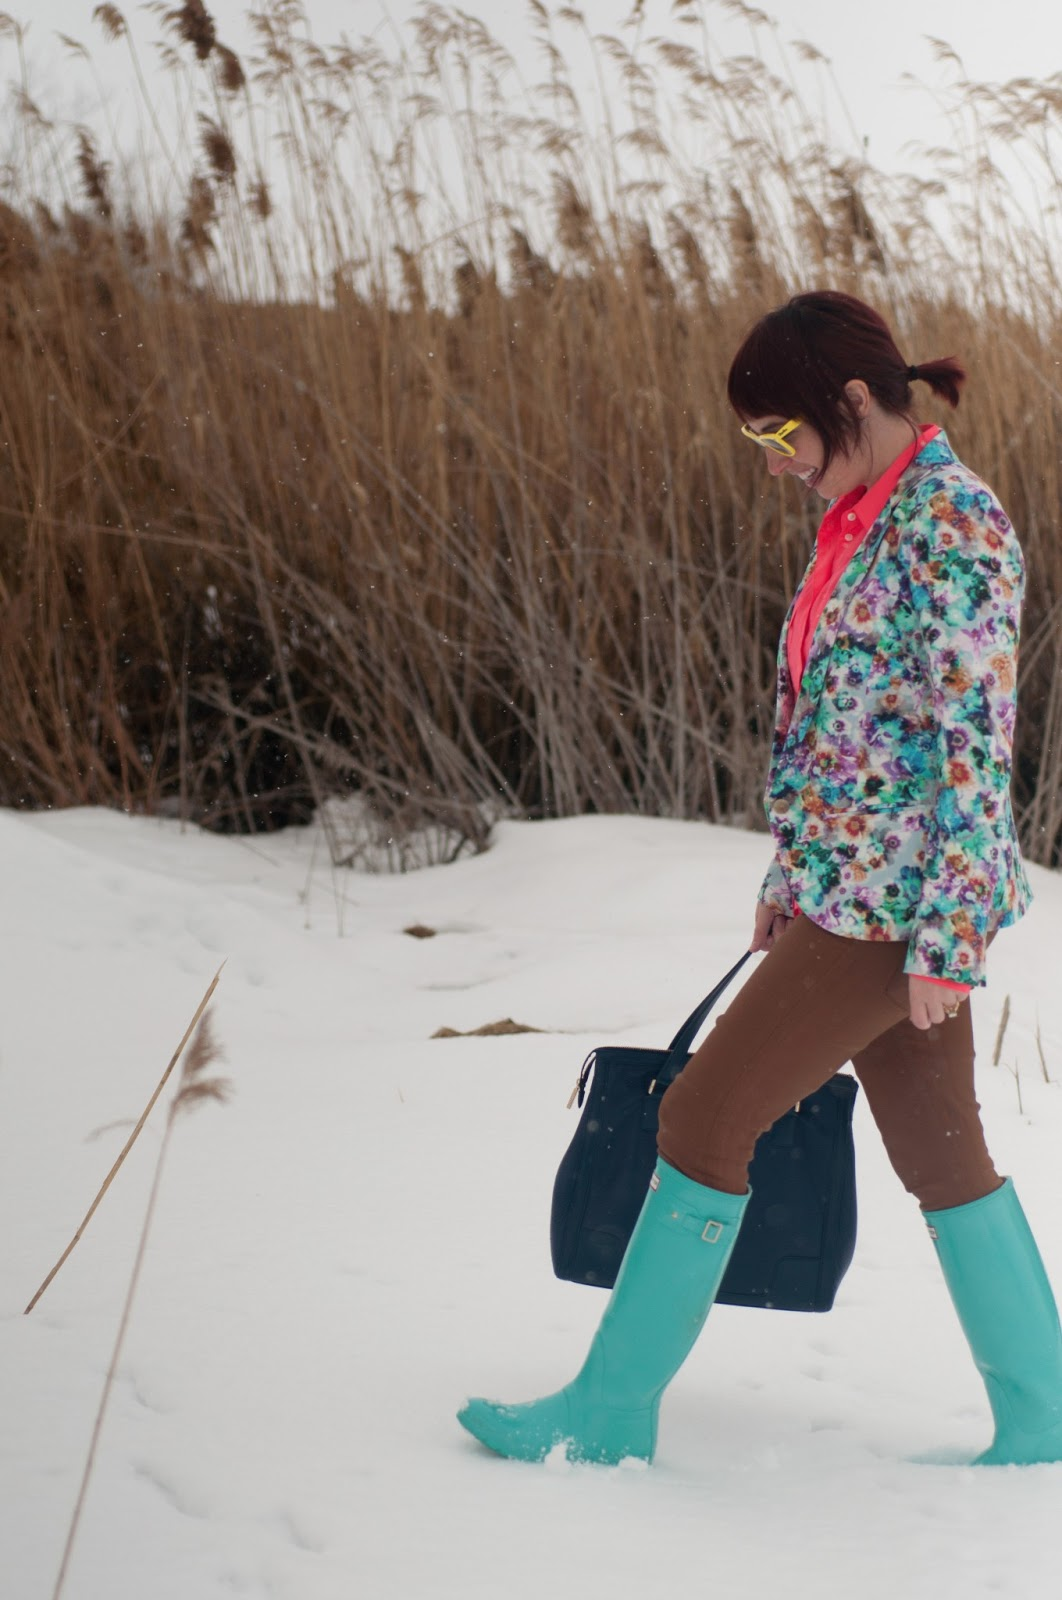 fashion blog, fashion blogger, mens fashion, mens style blog, blazer, floral, floral blazer, blue, pink, teal, hot pink, floral print, floral clothing, nordstrom, jcrew, jcrew blouse, silk blouse, blouse, waxed jeans, waxed pants, citizens of humanity, hunter, hunter boots, rain boots, rain boot, teal hunter boot, blue hunter boots, glossy boots, boot, glossy hunter boot, tory burch, leather purse, navy purse, leather purse, navy leather, ray ban, ray bans, wayfer, wayfer ray ban, earrings, bow earrings, gold earrings, womens style, fashion, style, fashion blogger, womens fashion blogger, neon yellow, snow, reeds, personal style, outfit post, style post,